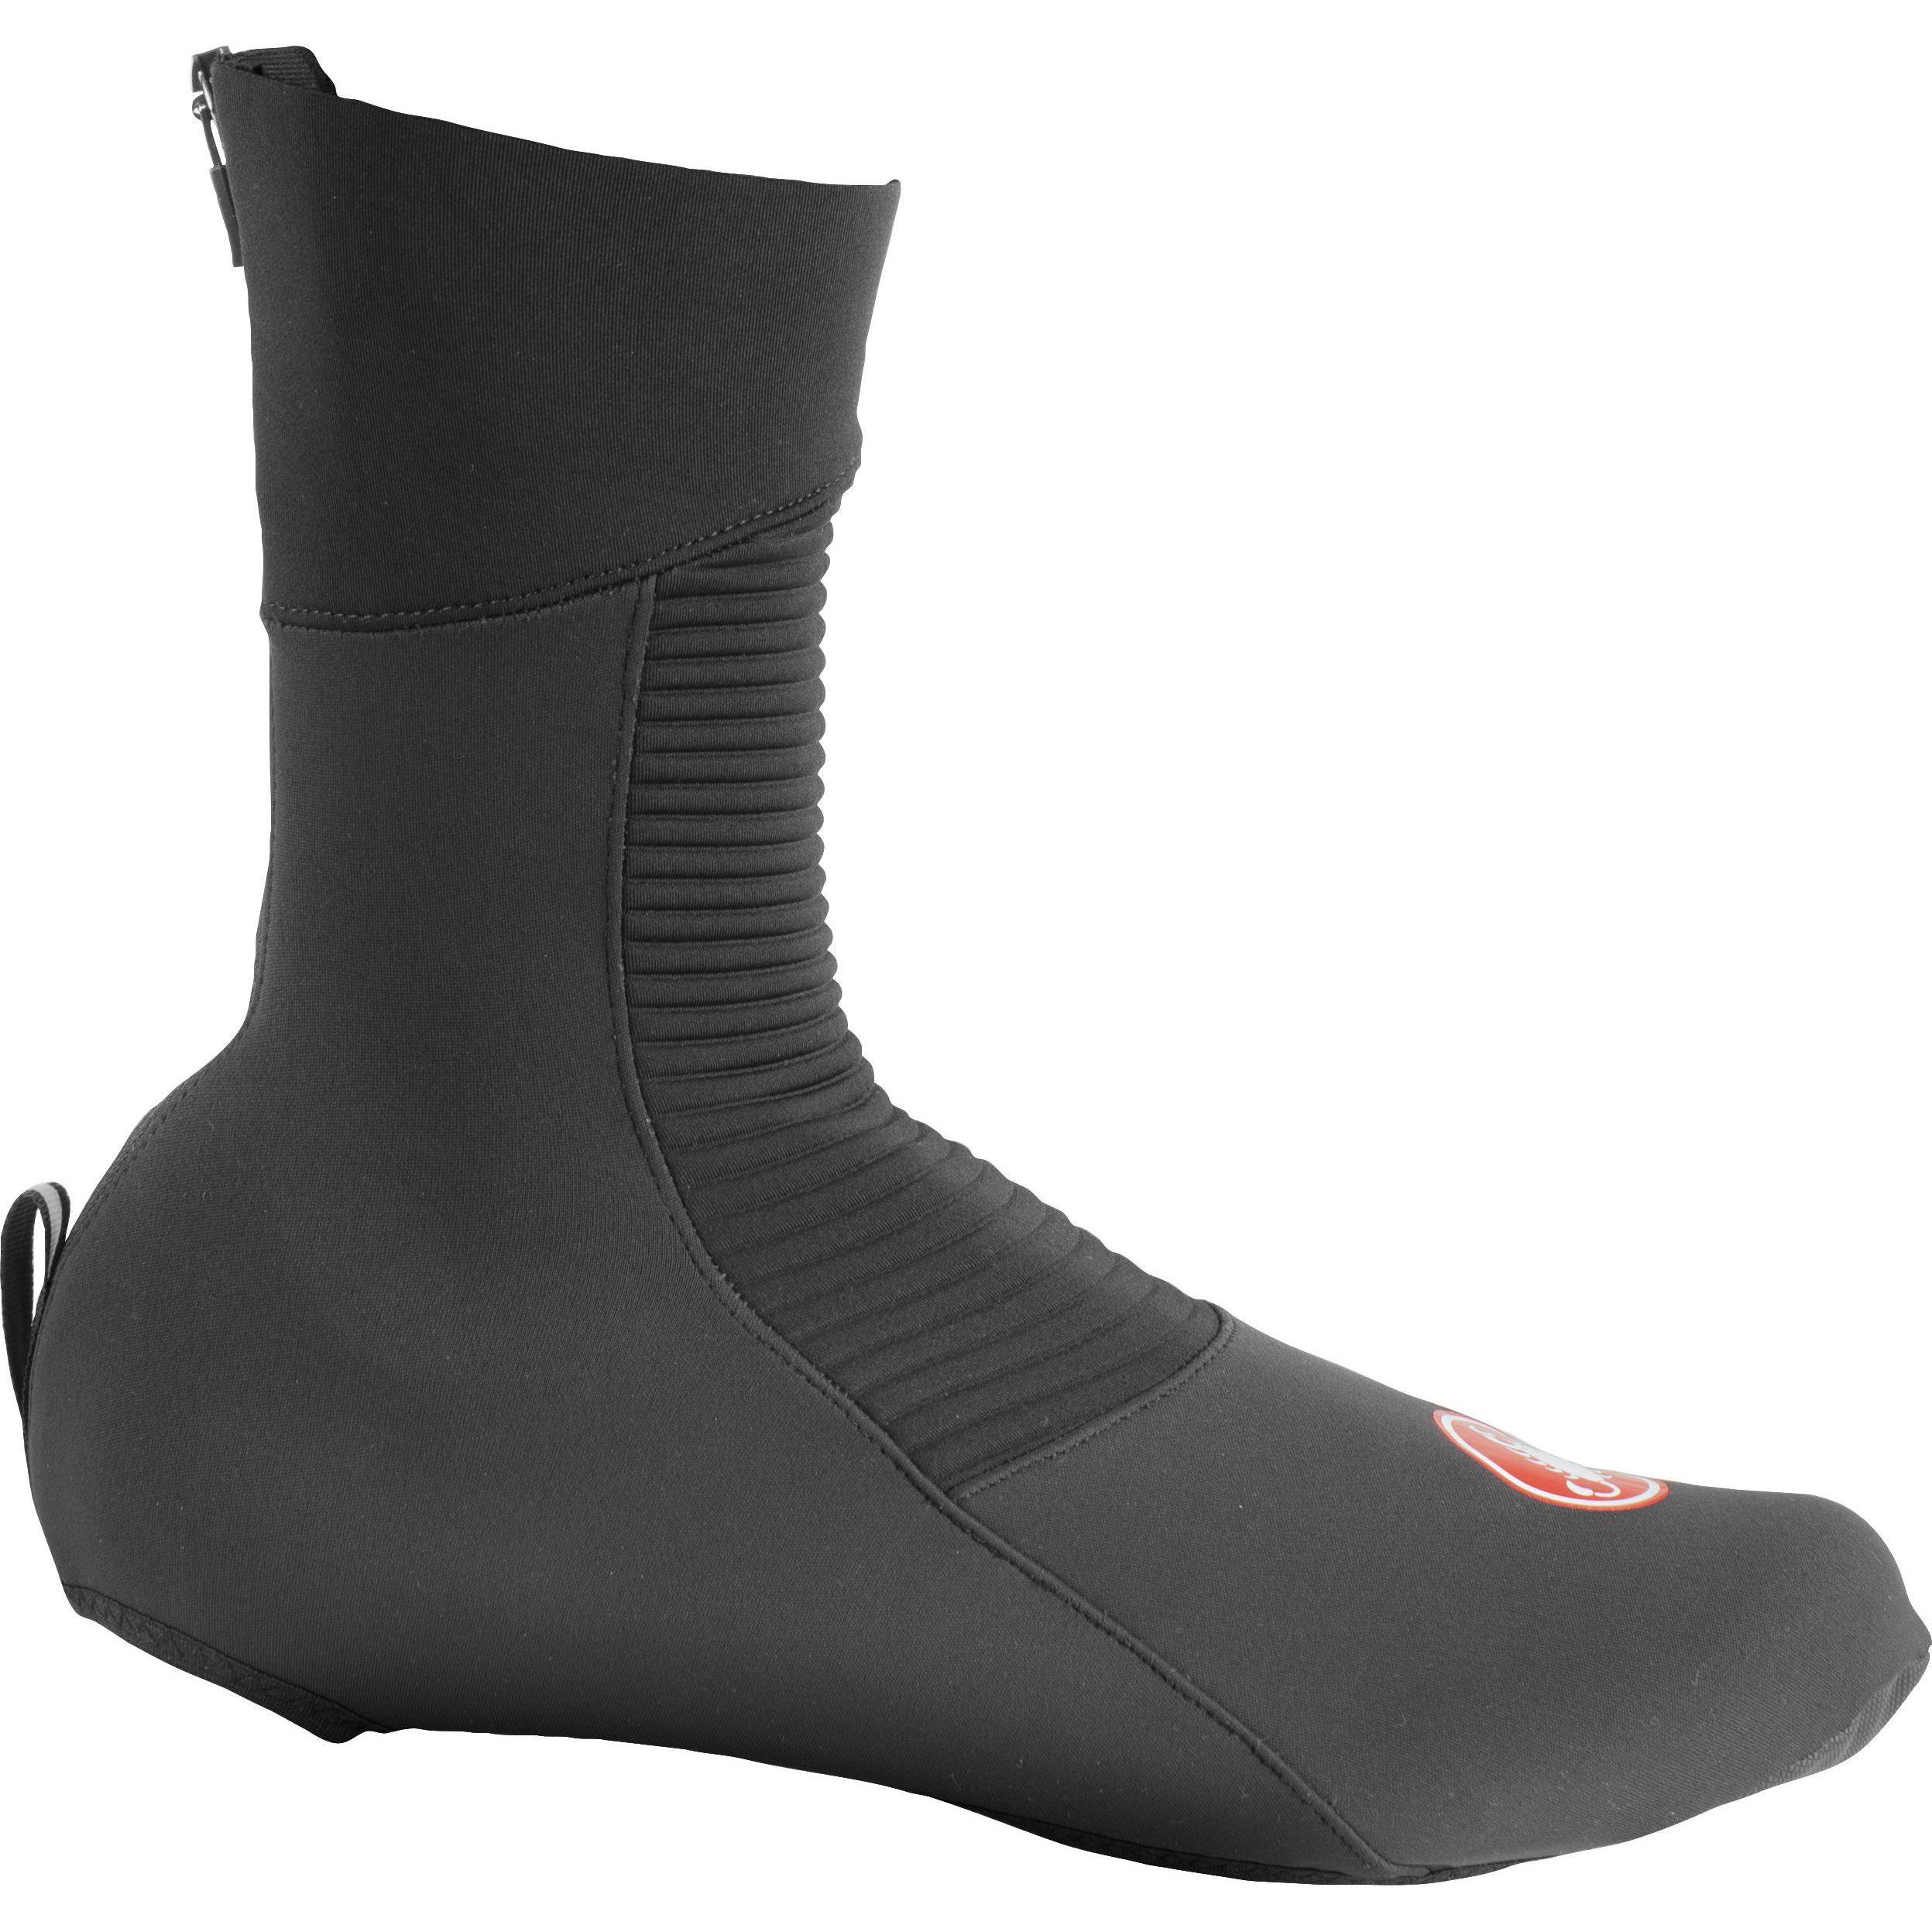 Castelli-Castelli Entrata Shoecover-Black-S-CS205390102-saddleback-elite-performance-cycling